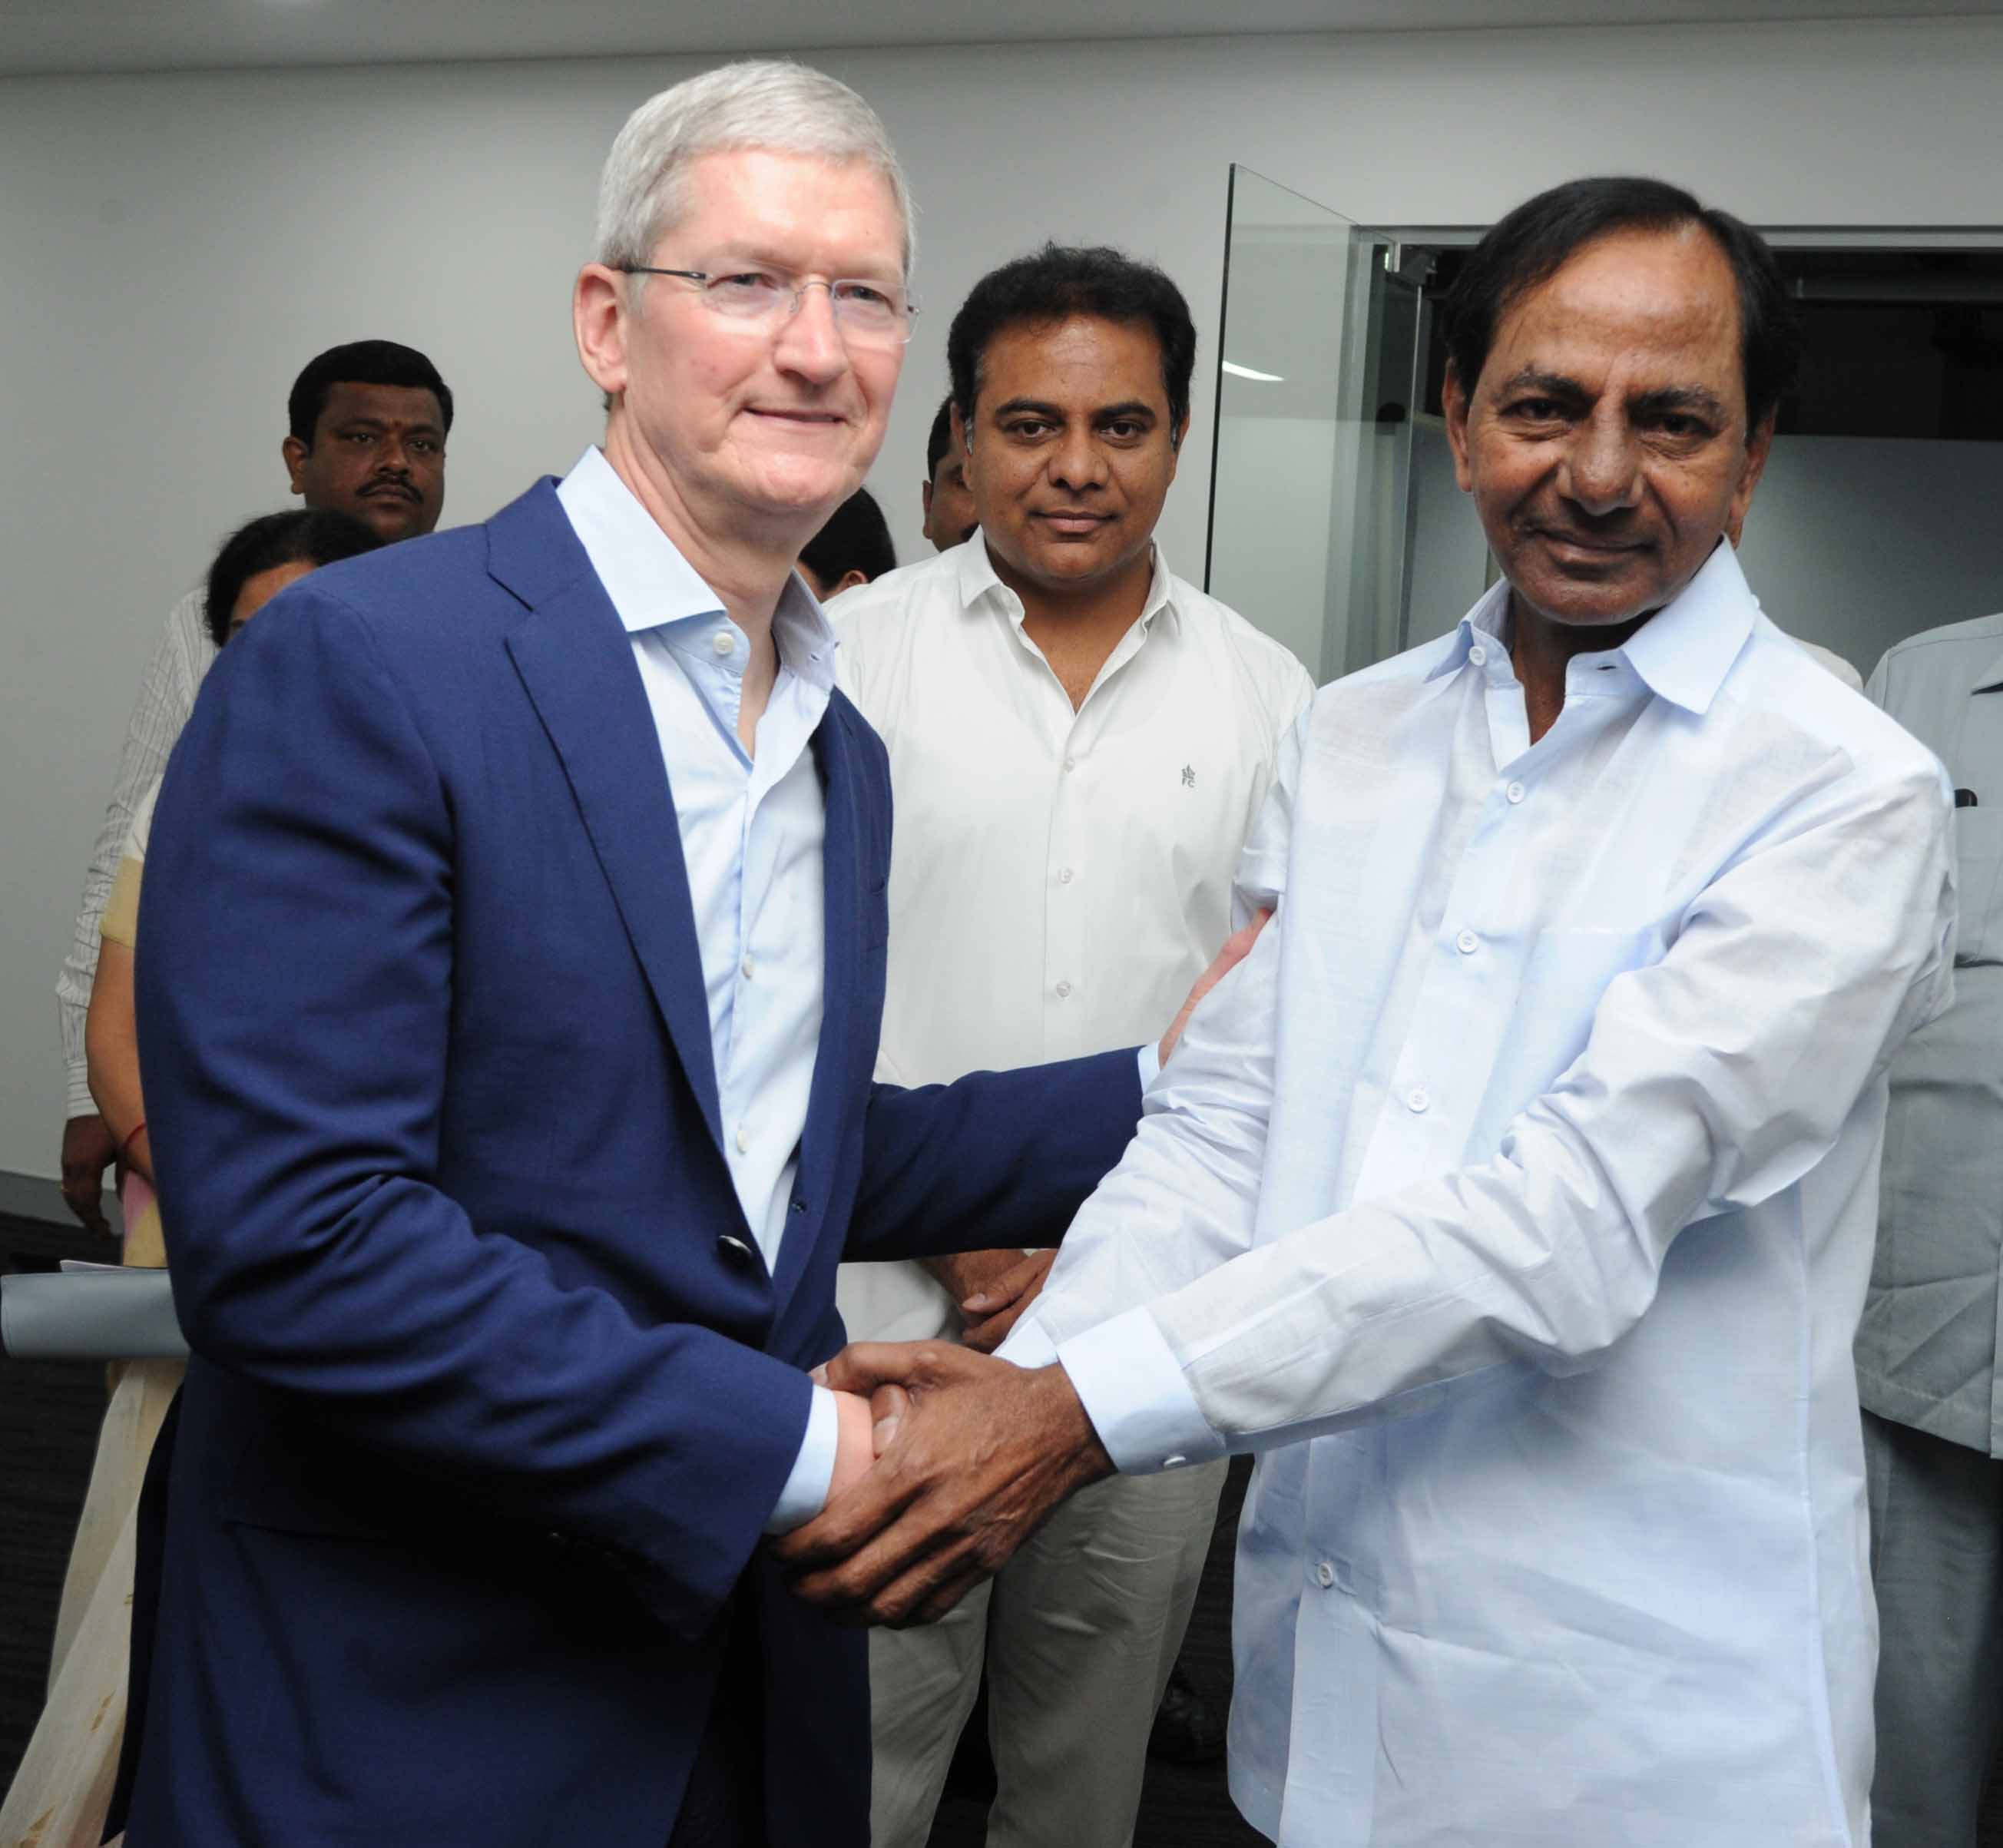 Telangana Chief Minister K. Chandrashekar Rao inaugurated the Apple Development Centre along with the technology major\'s Apple CEO Tim Cook and IT Minister KT Rama Rao at Waverock building, Nanakramguda, Hyderabad on 19-05-2016